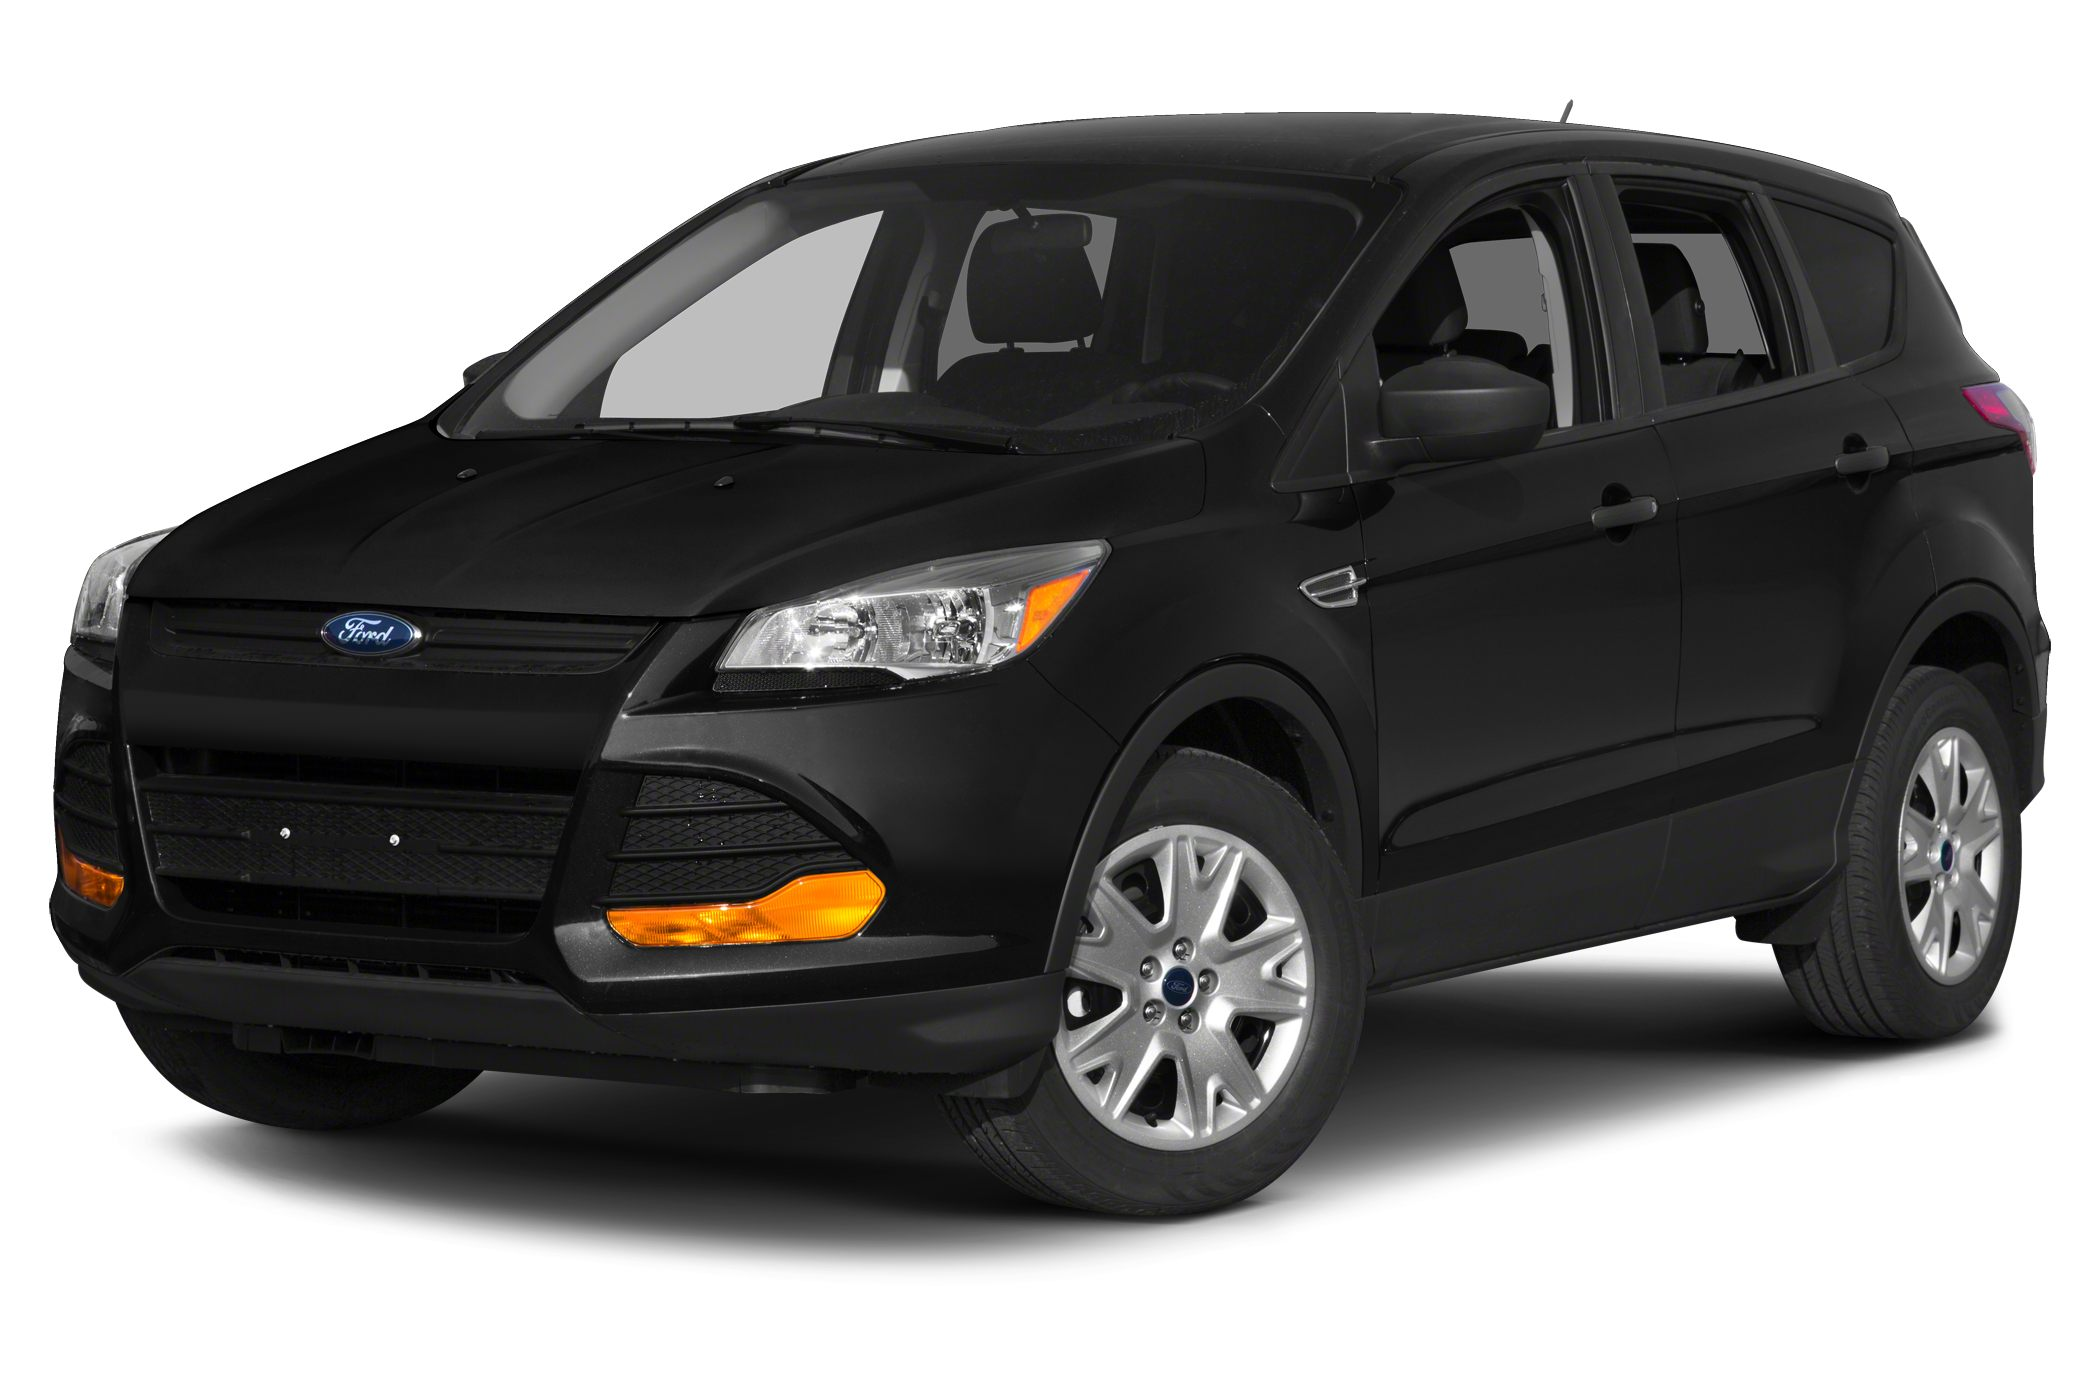 2014 Ford Escape Titanium SUV for sale in Ebensburg for $26,000 with 17,951 miles.